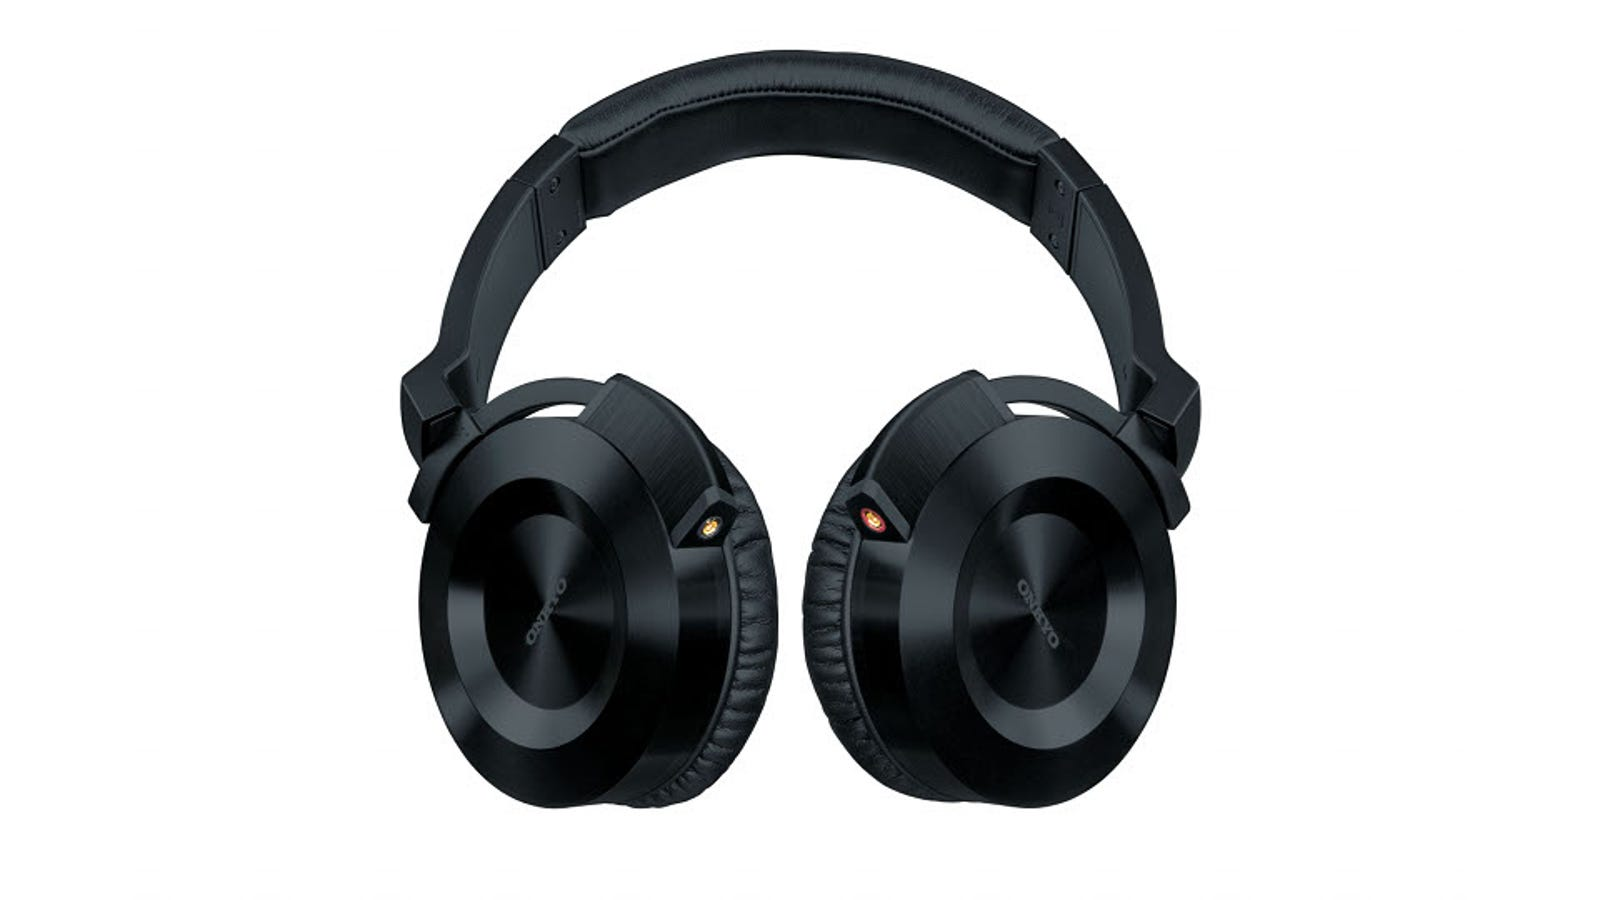 sony professional headphones wireless